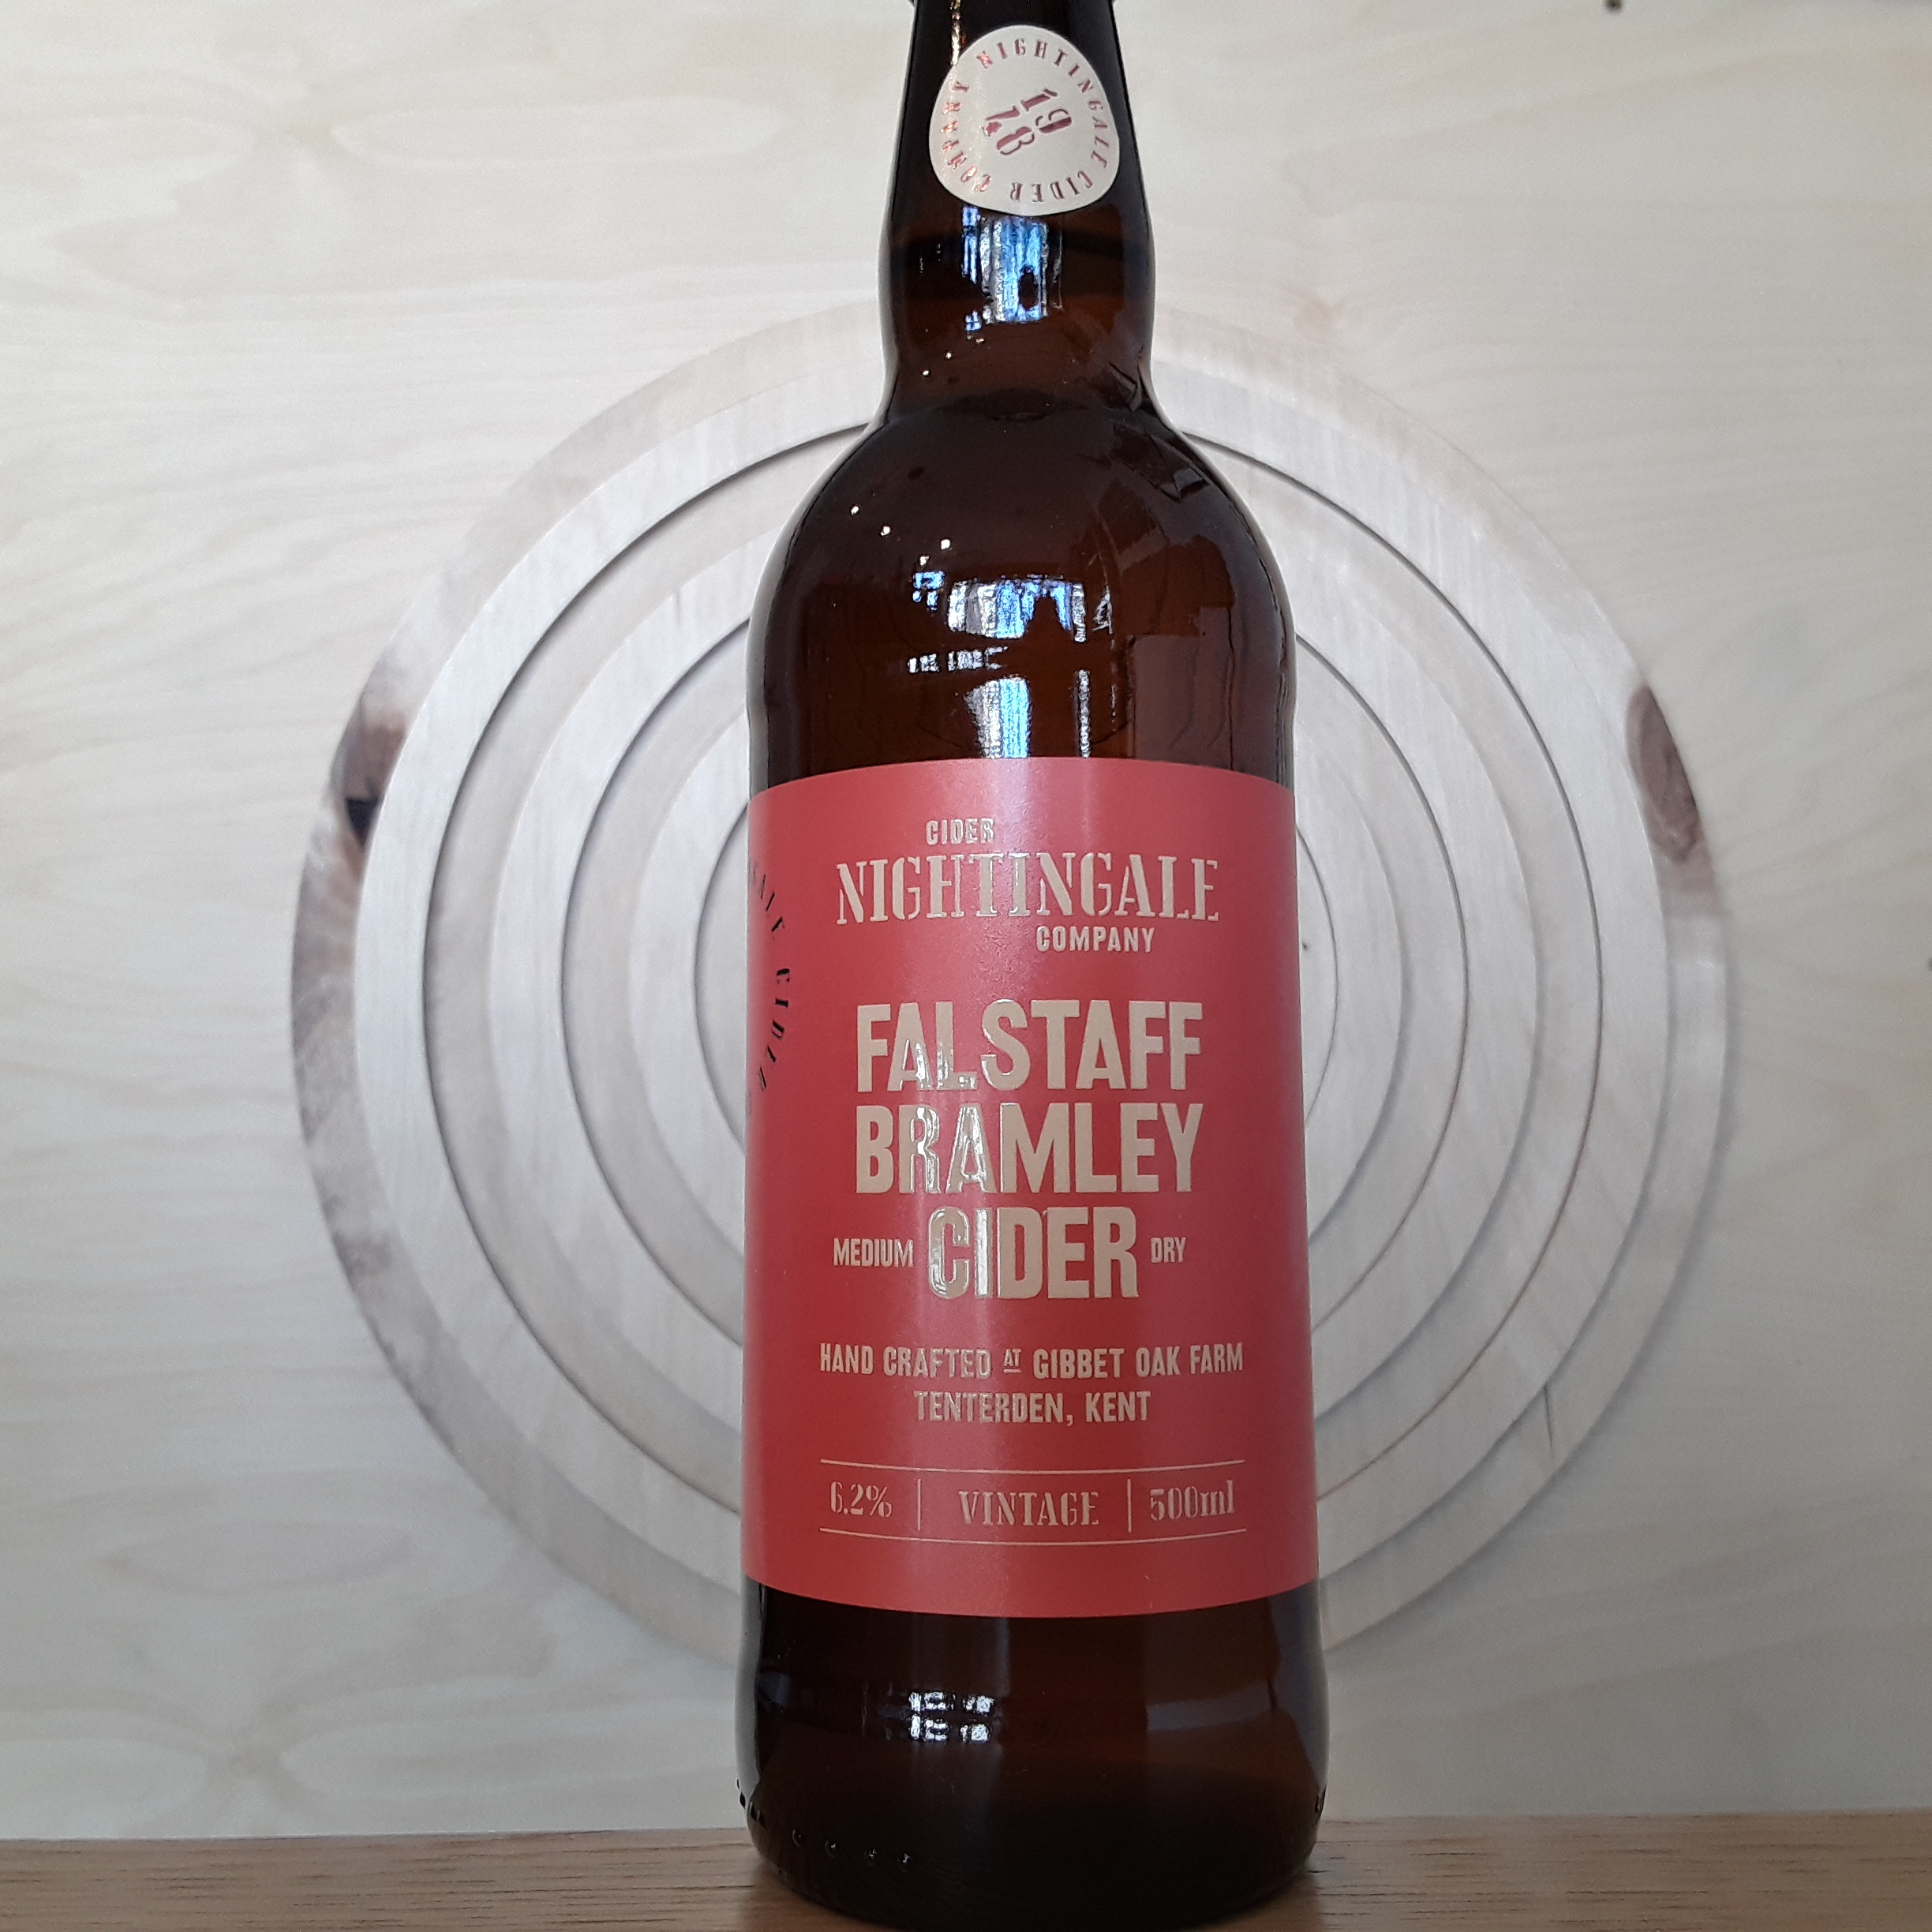 Nightingale Fallstaff Bramley Cider